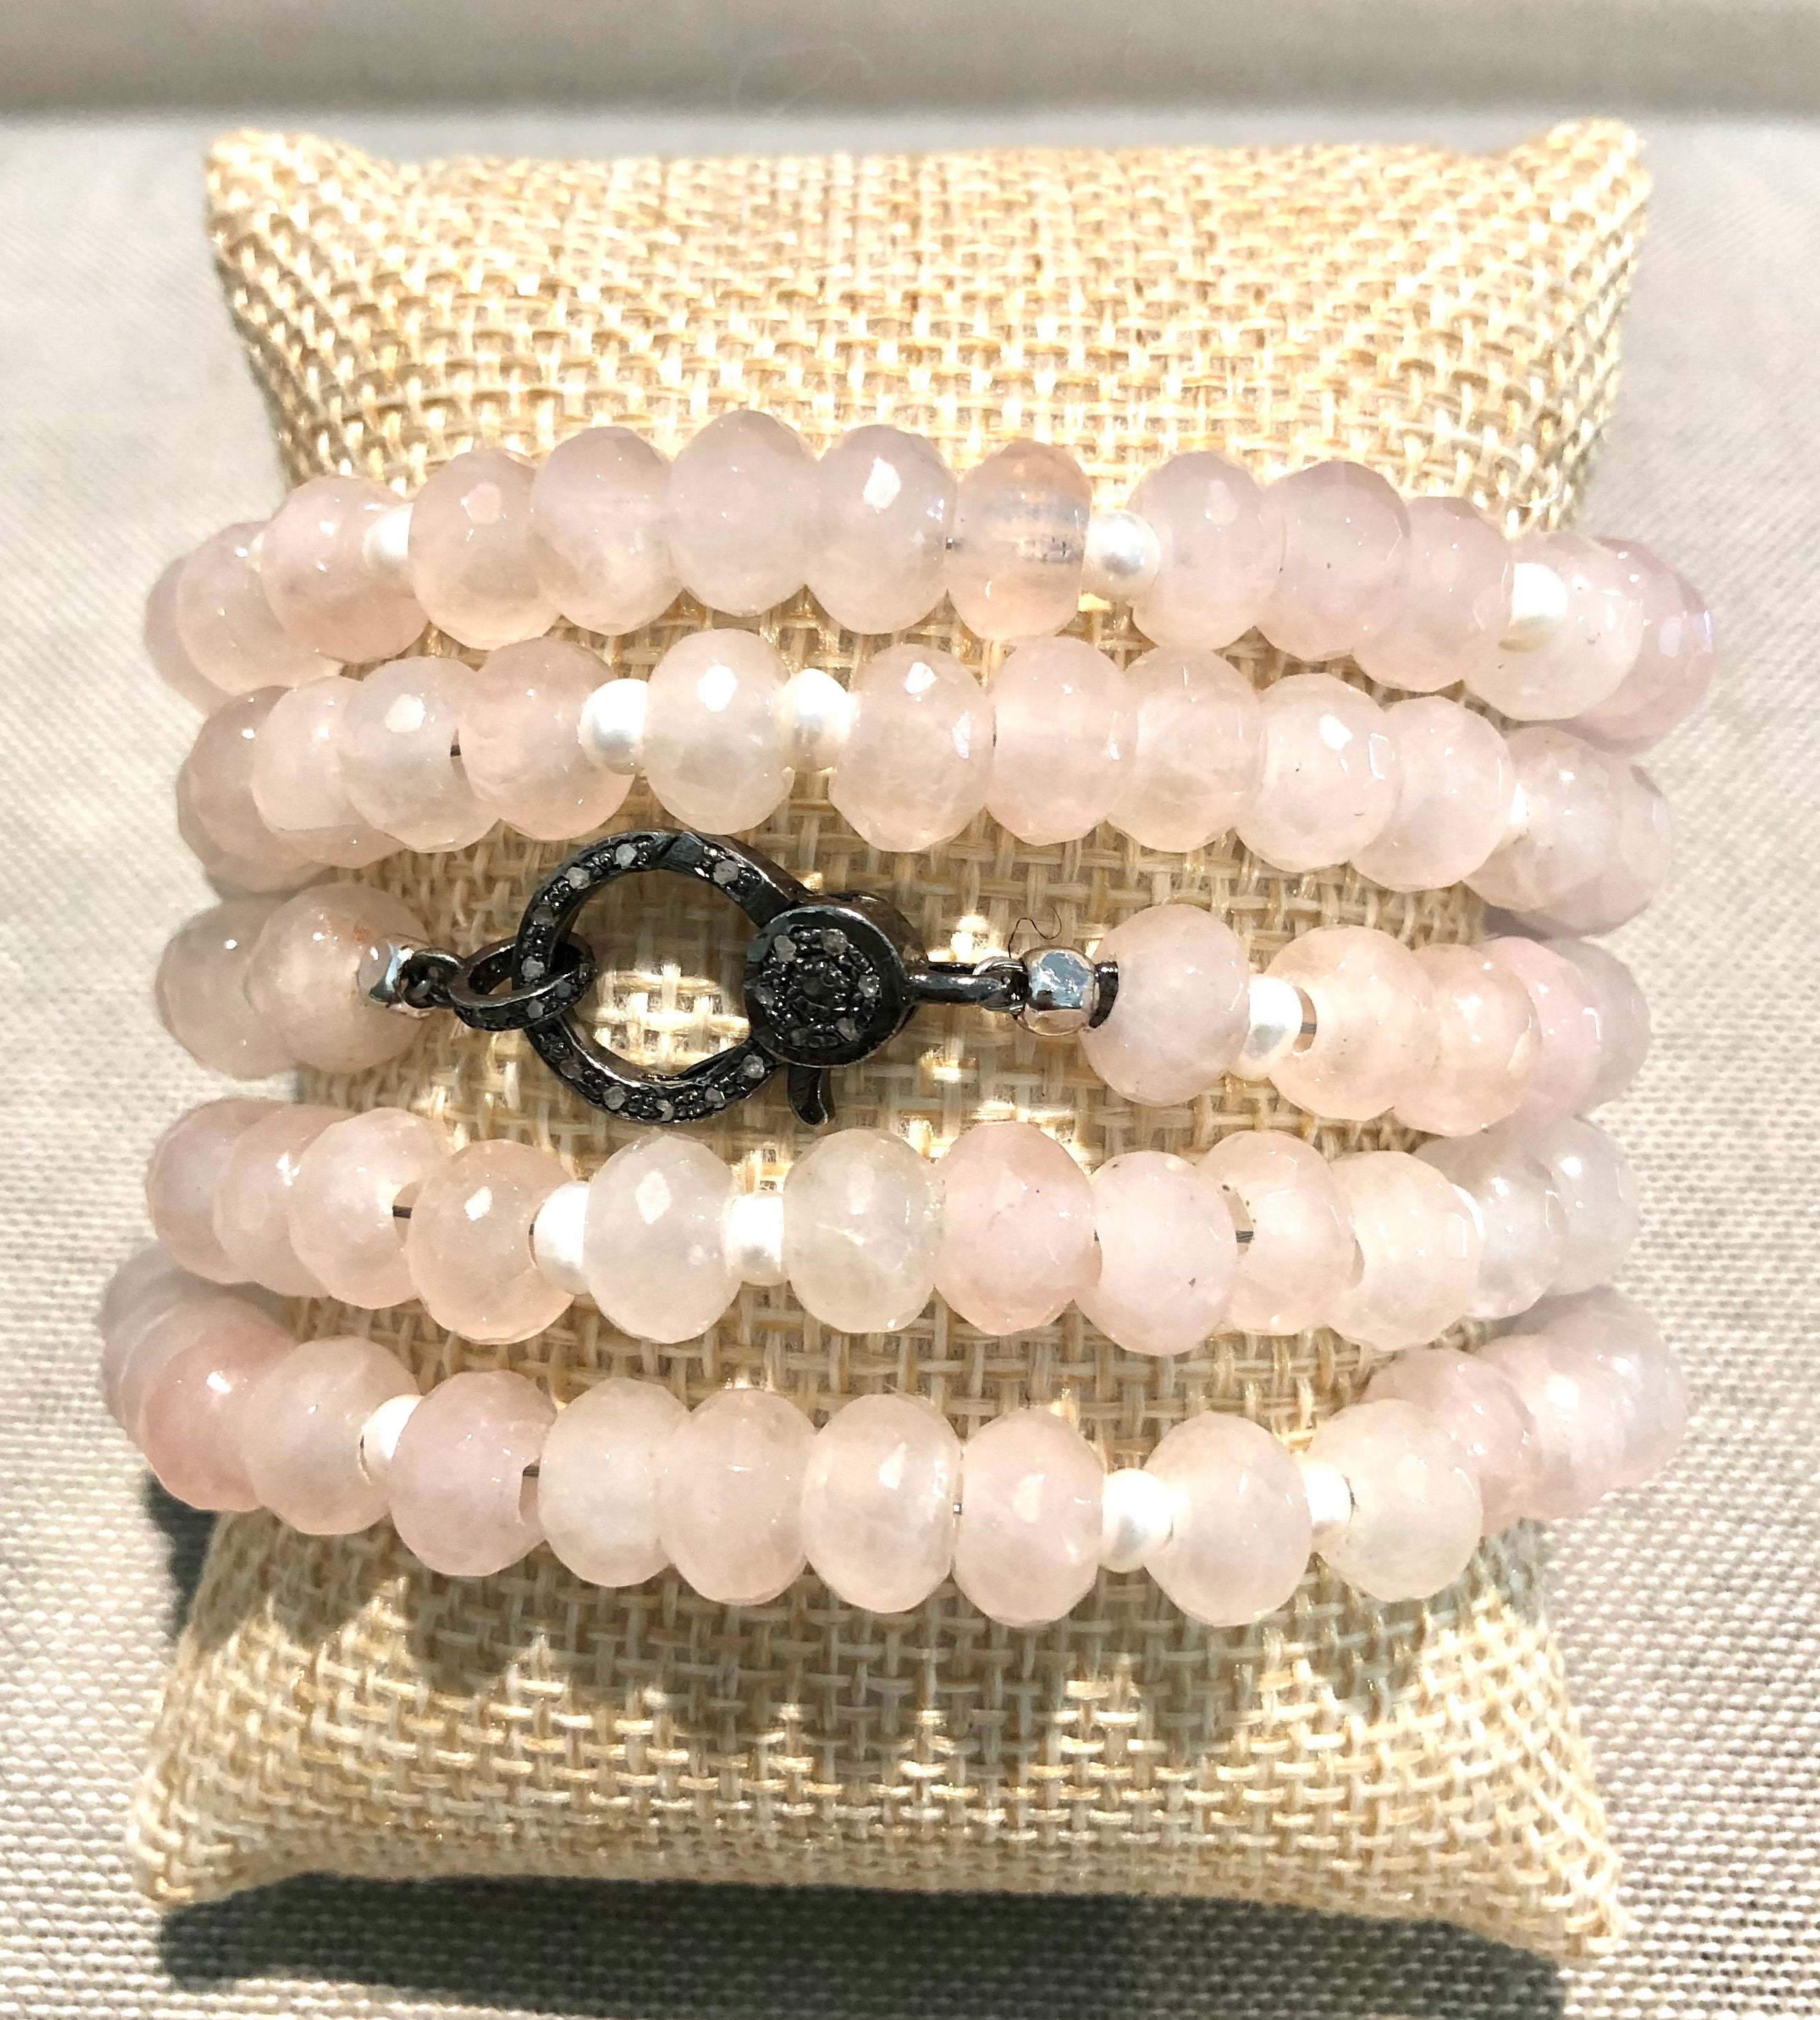 quartz, pearl and pave diamond hook bracelet